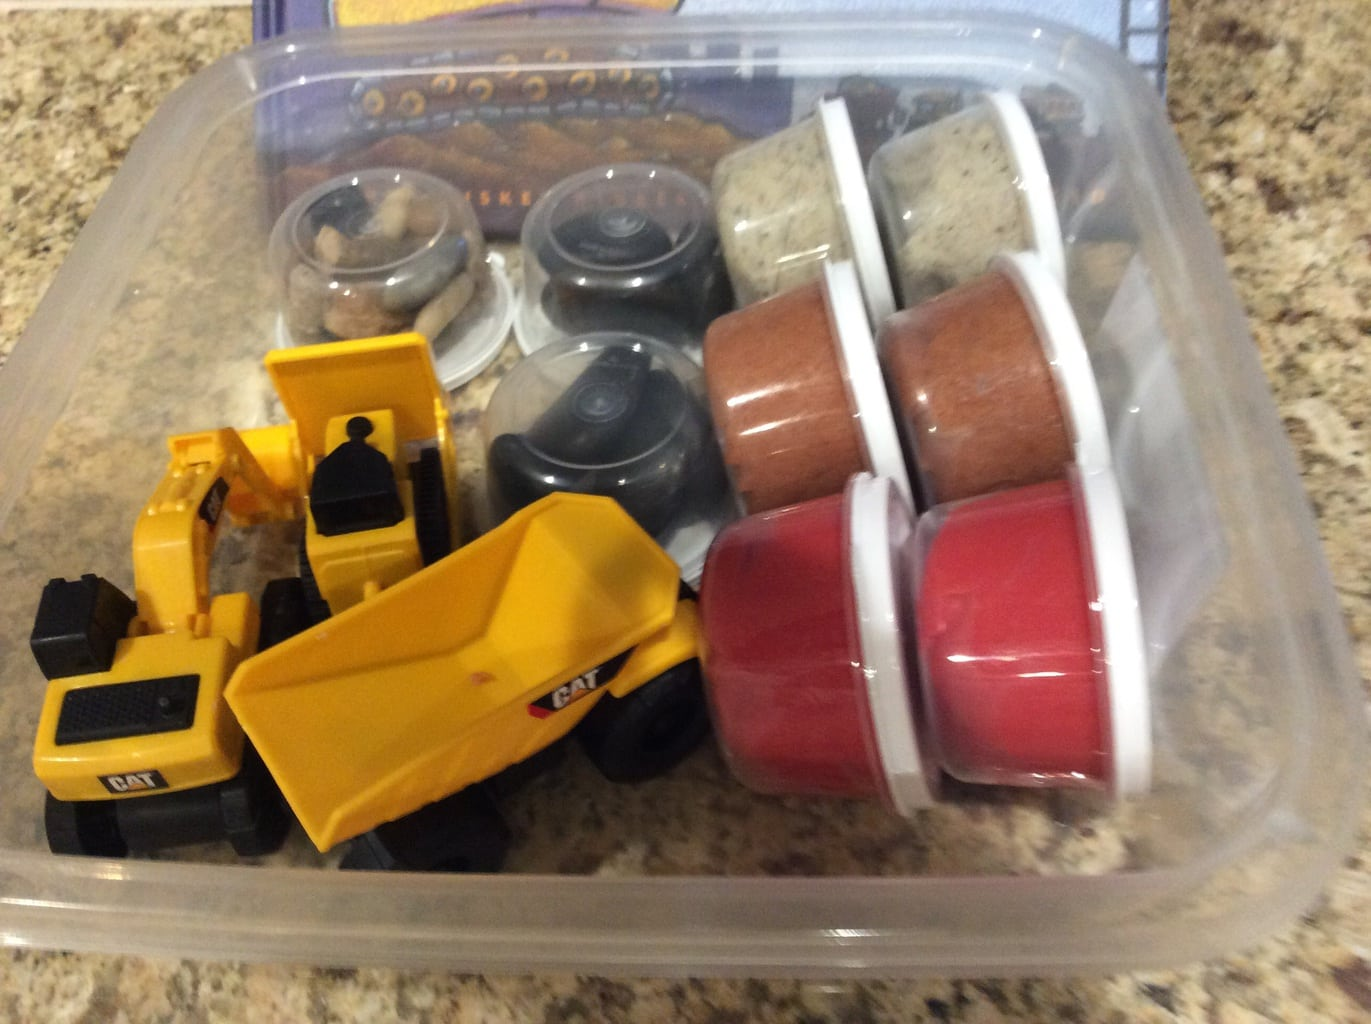 Constuction Play Dough Set | Aileen Cooks